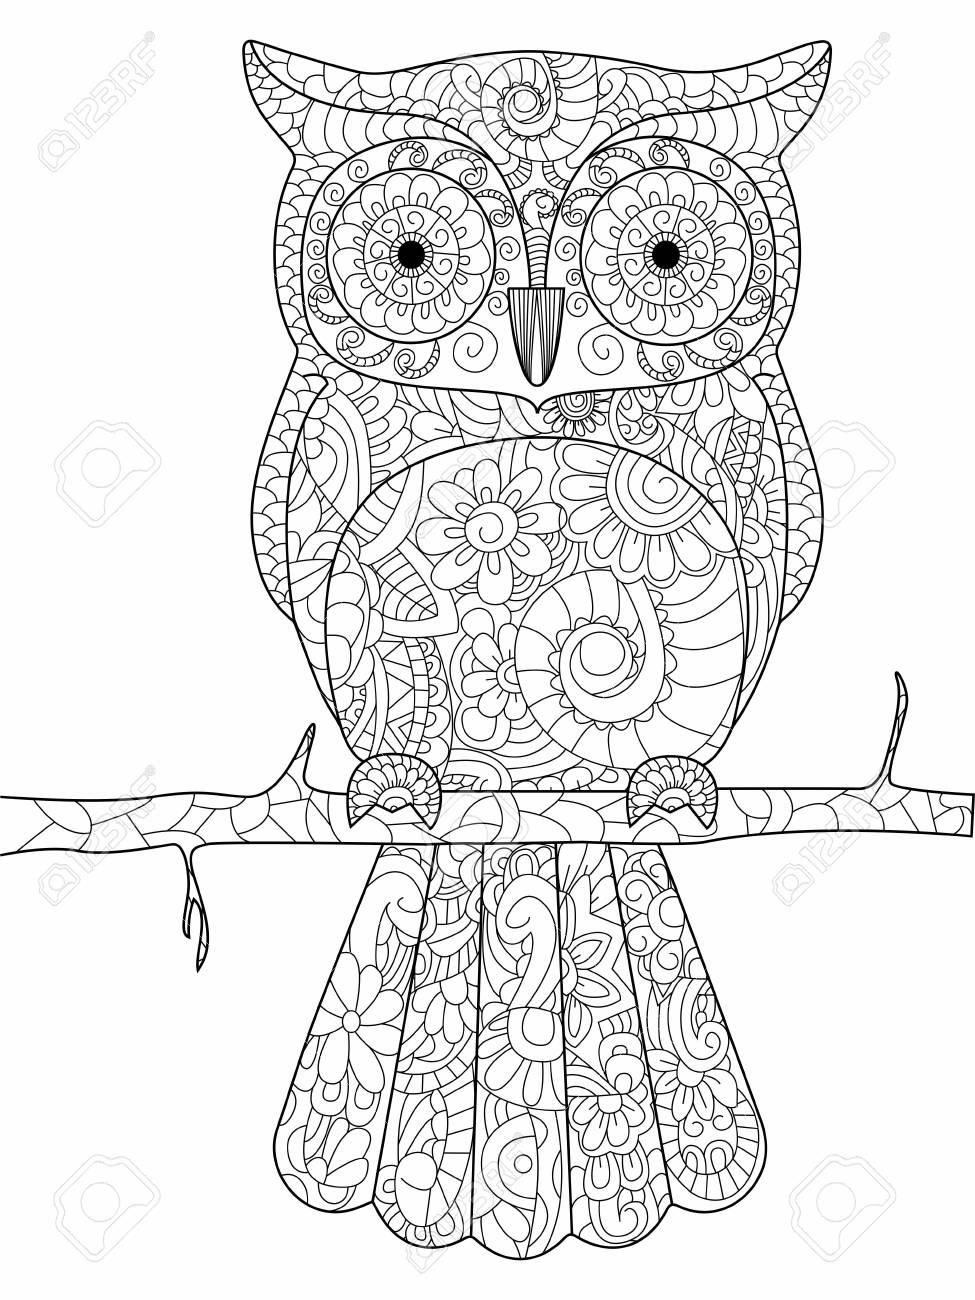 Owl On A Branch Coloring Book For Adults Illustration. Anti-stress ...